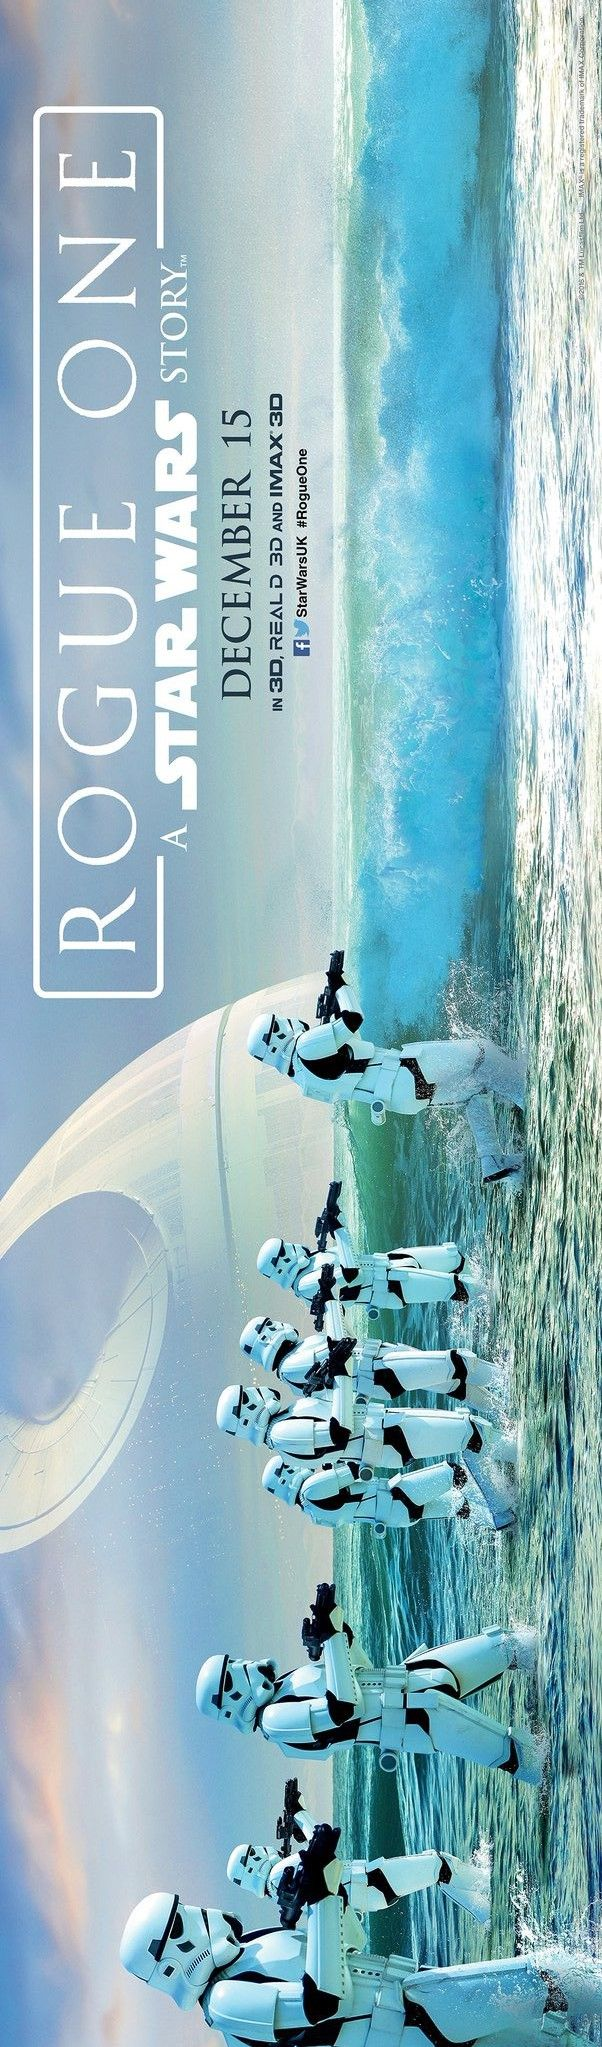 What do BBC critics think of star wars rogue one